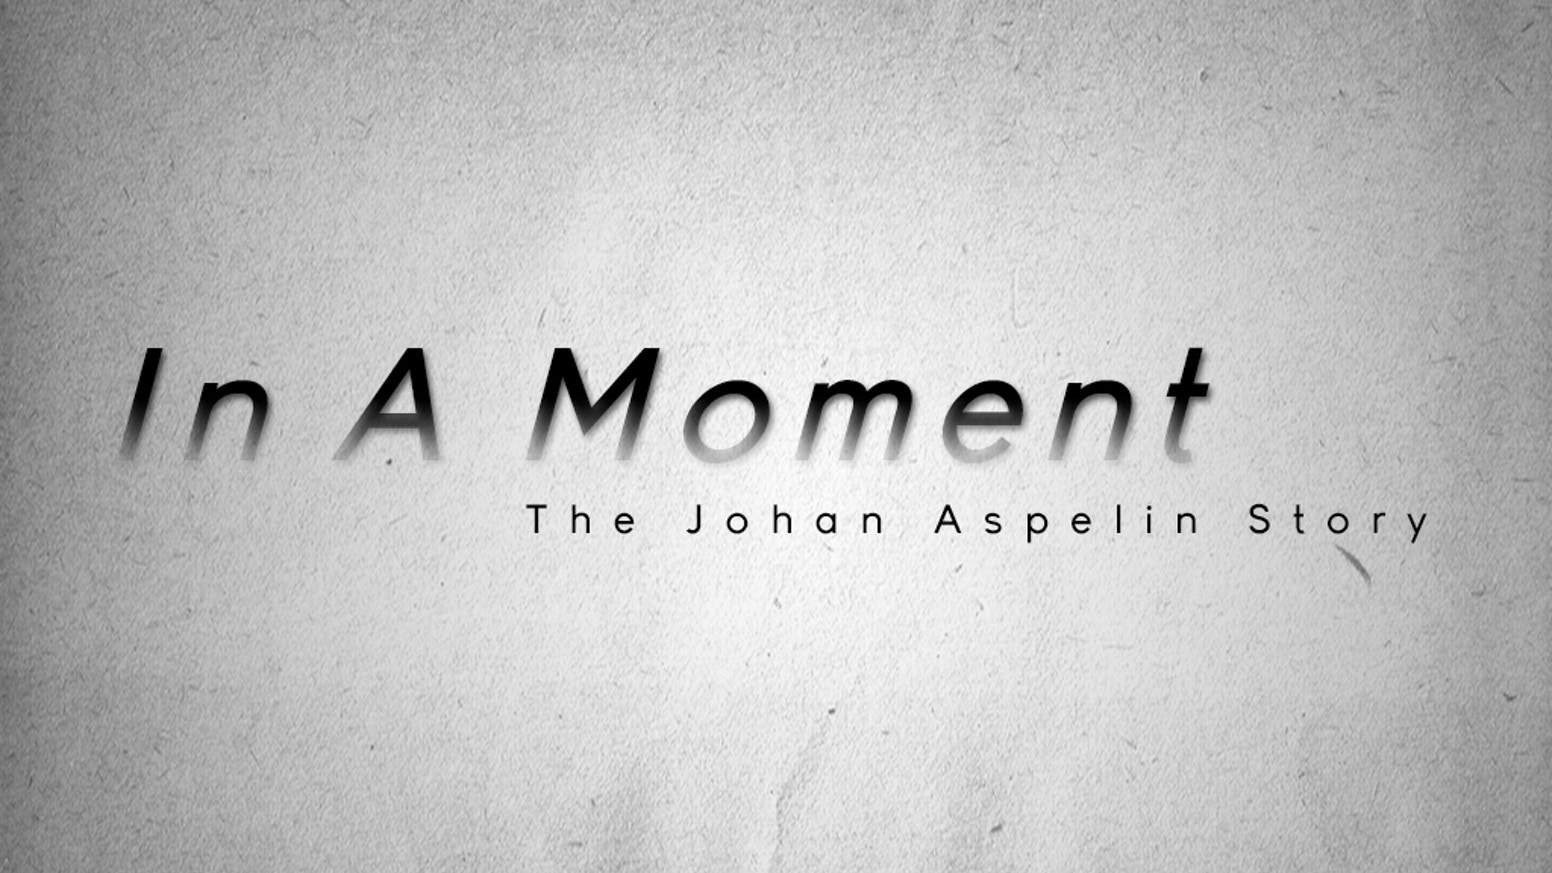 IN A MOMENT is a documentary film about a family's commitment to survival after the tragic loss of their infant son.